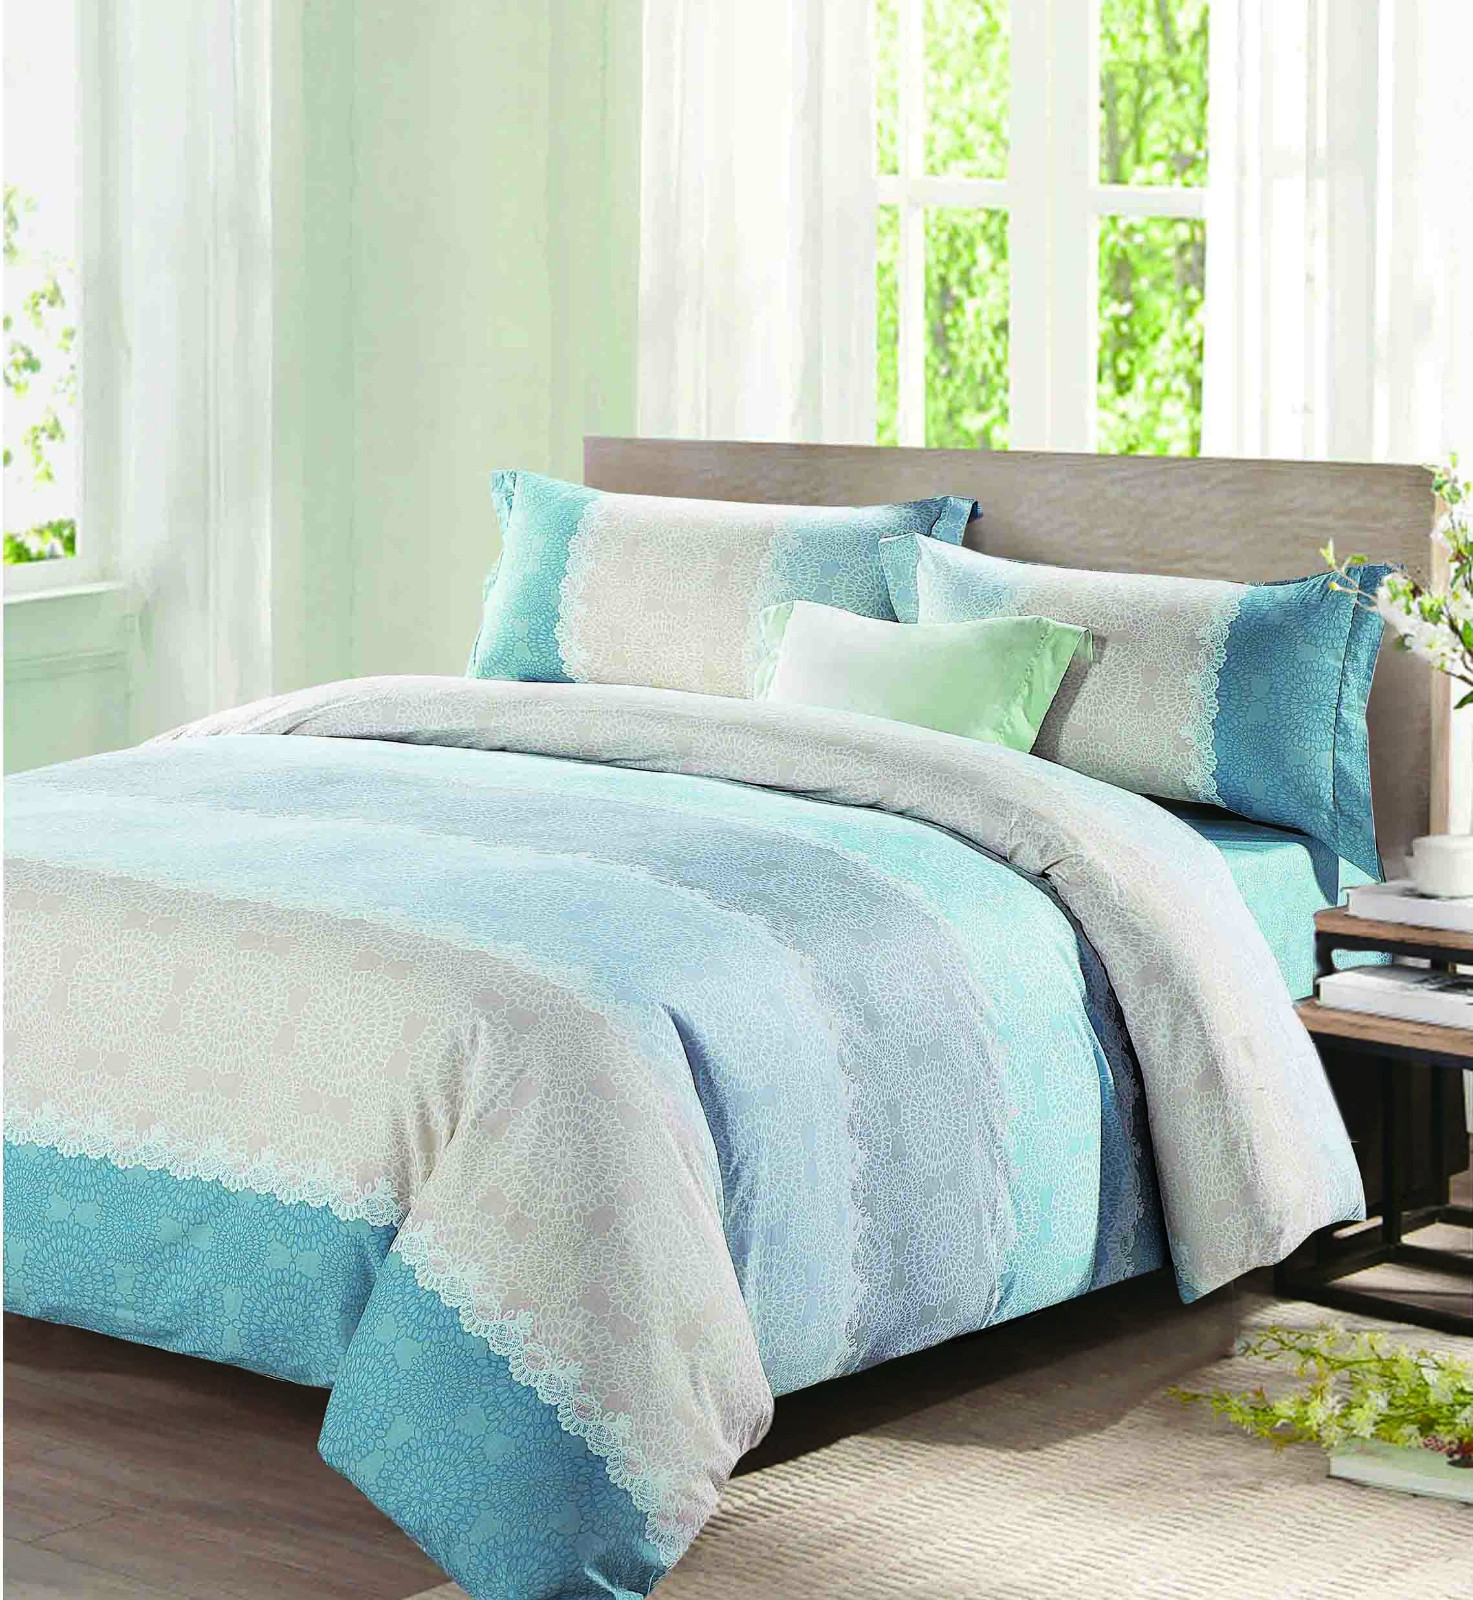 Custom embroidery Cotton Bedding Sets printed 100 cotton bedding sets